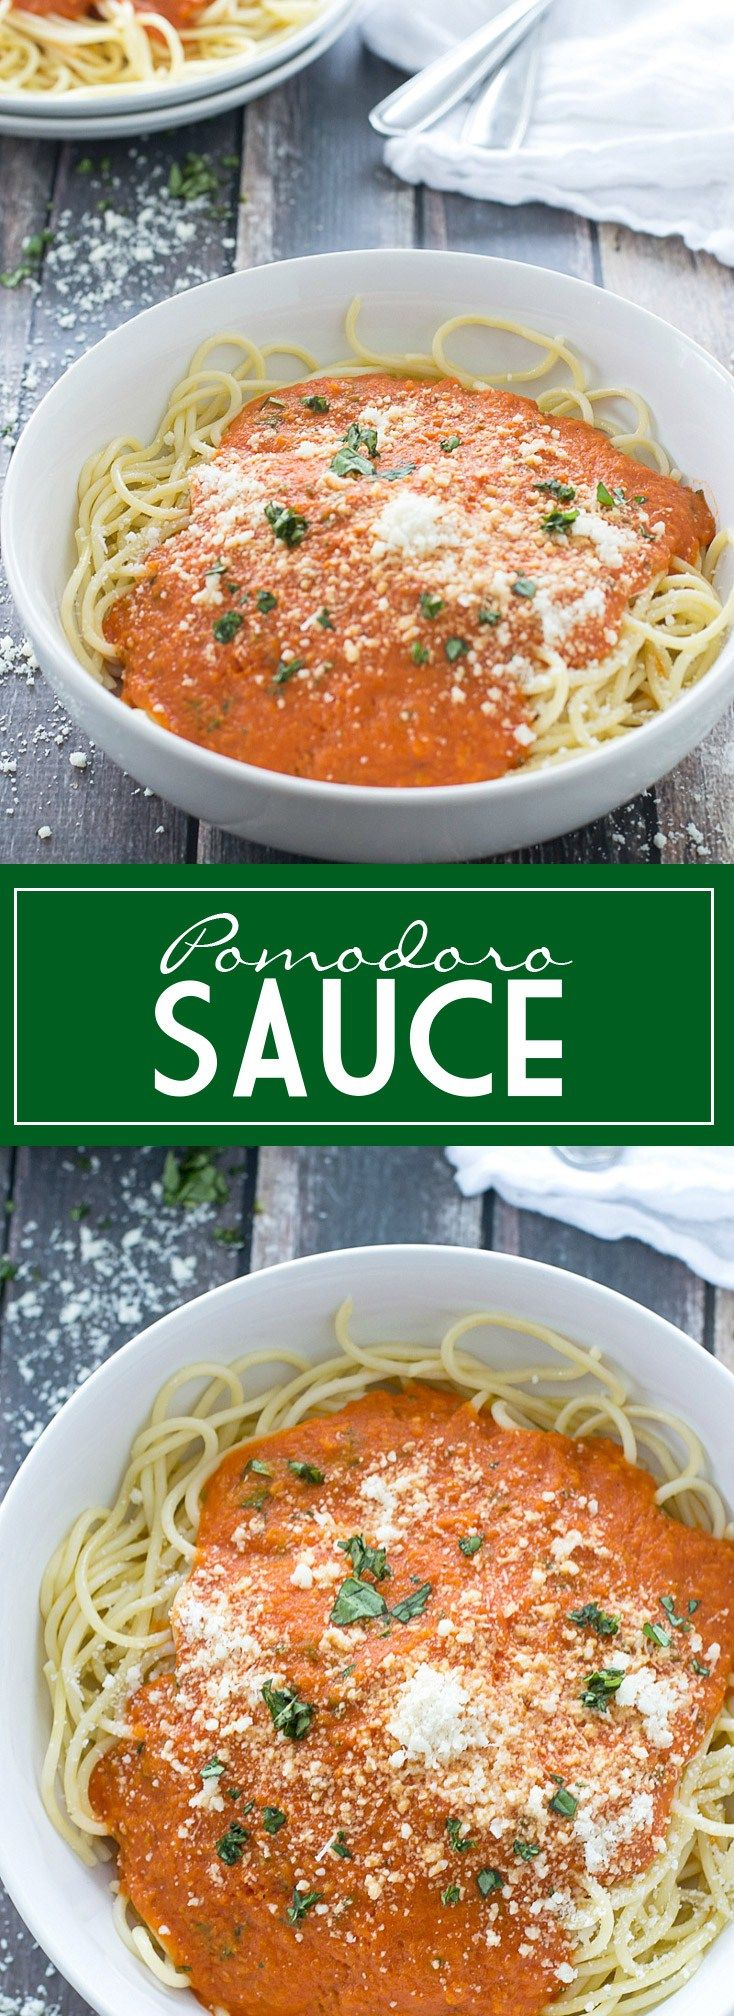 An easy and delicious recipe for Pomodoro Sauce | www.motherthyme.com